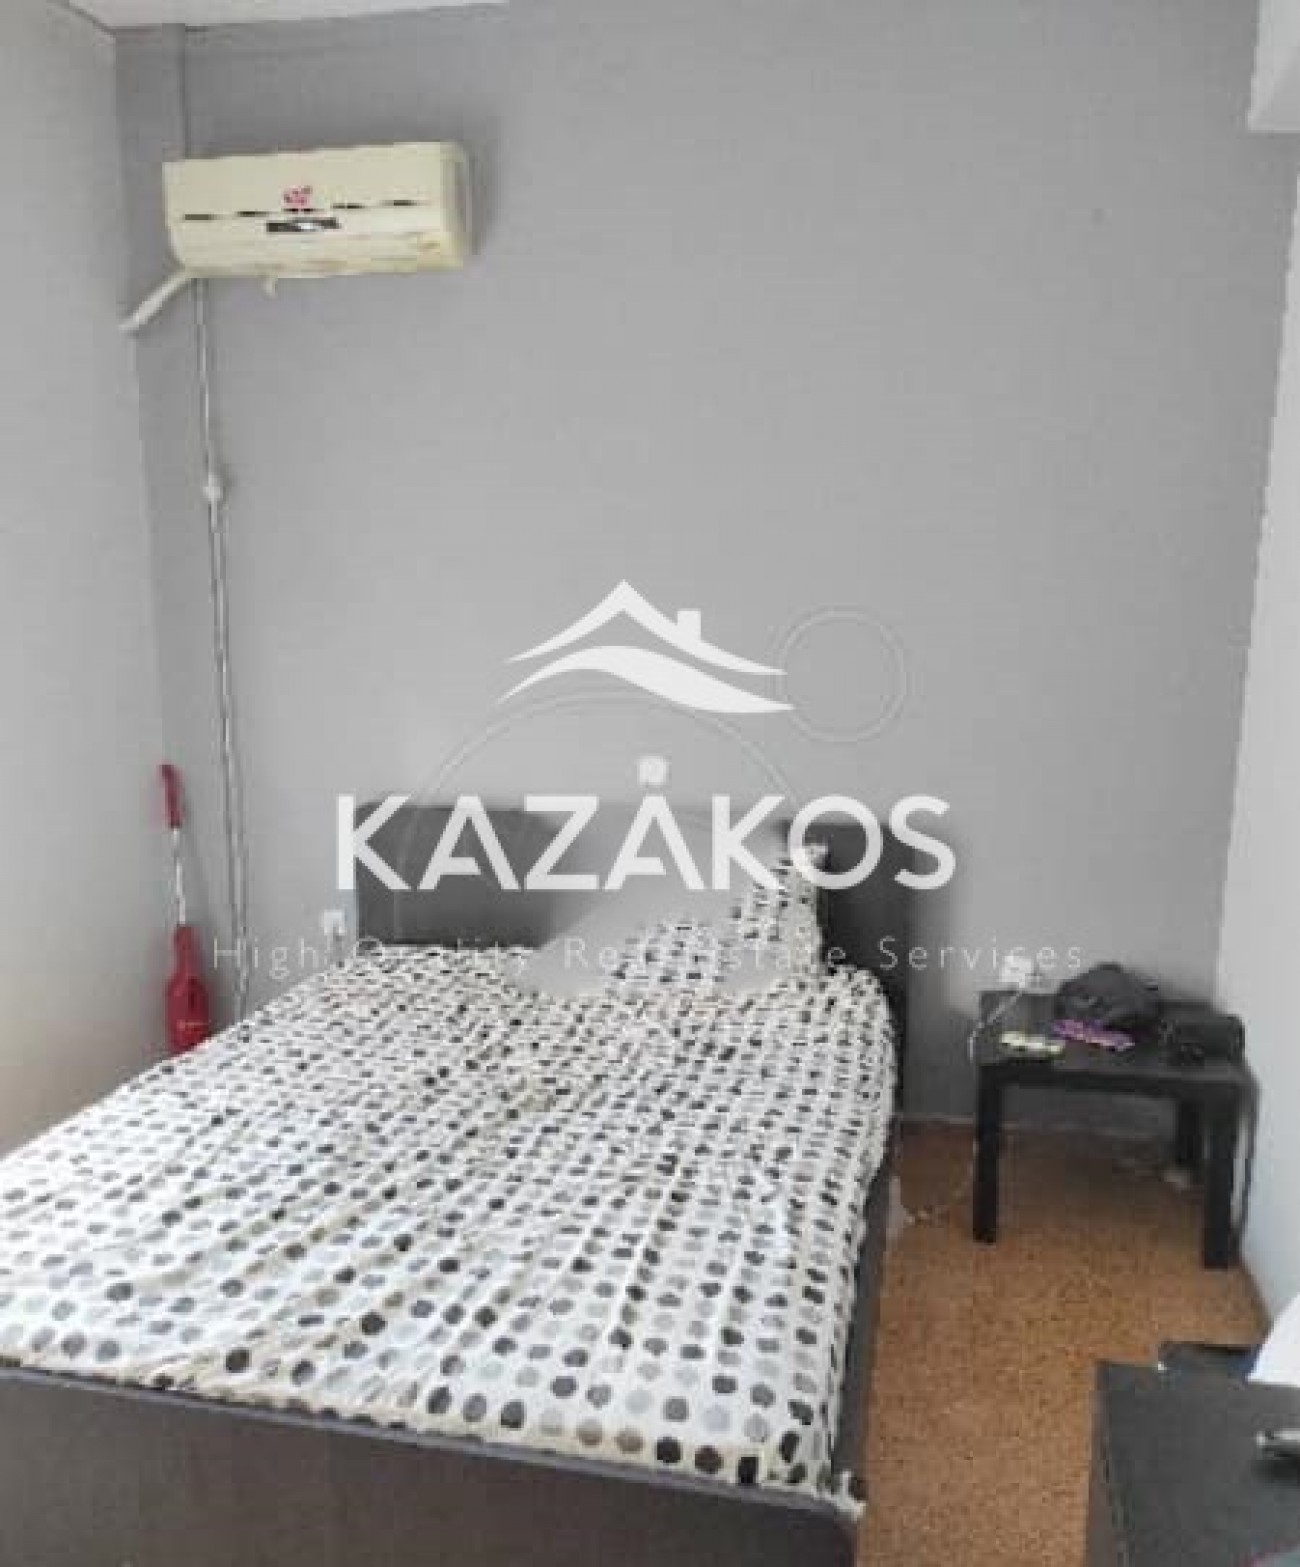 Apartment for Sale in Peristeri, Central & West Region of Athens, Greece